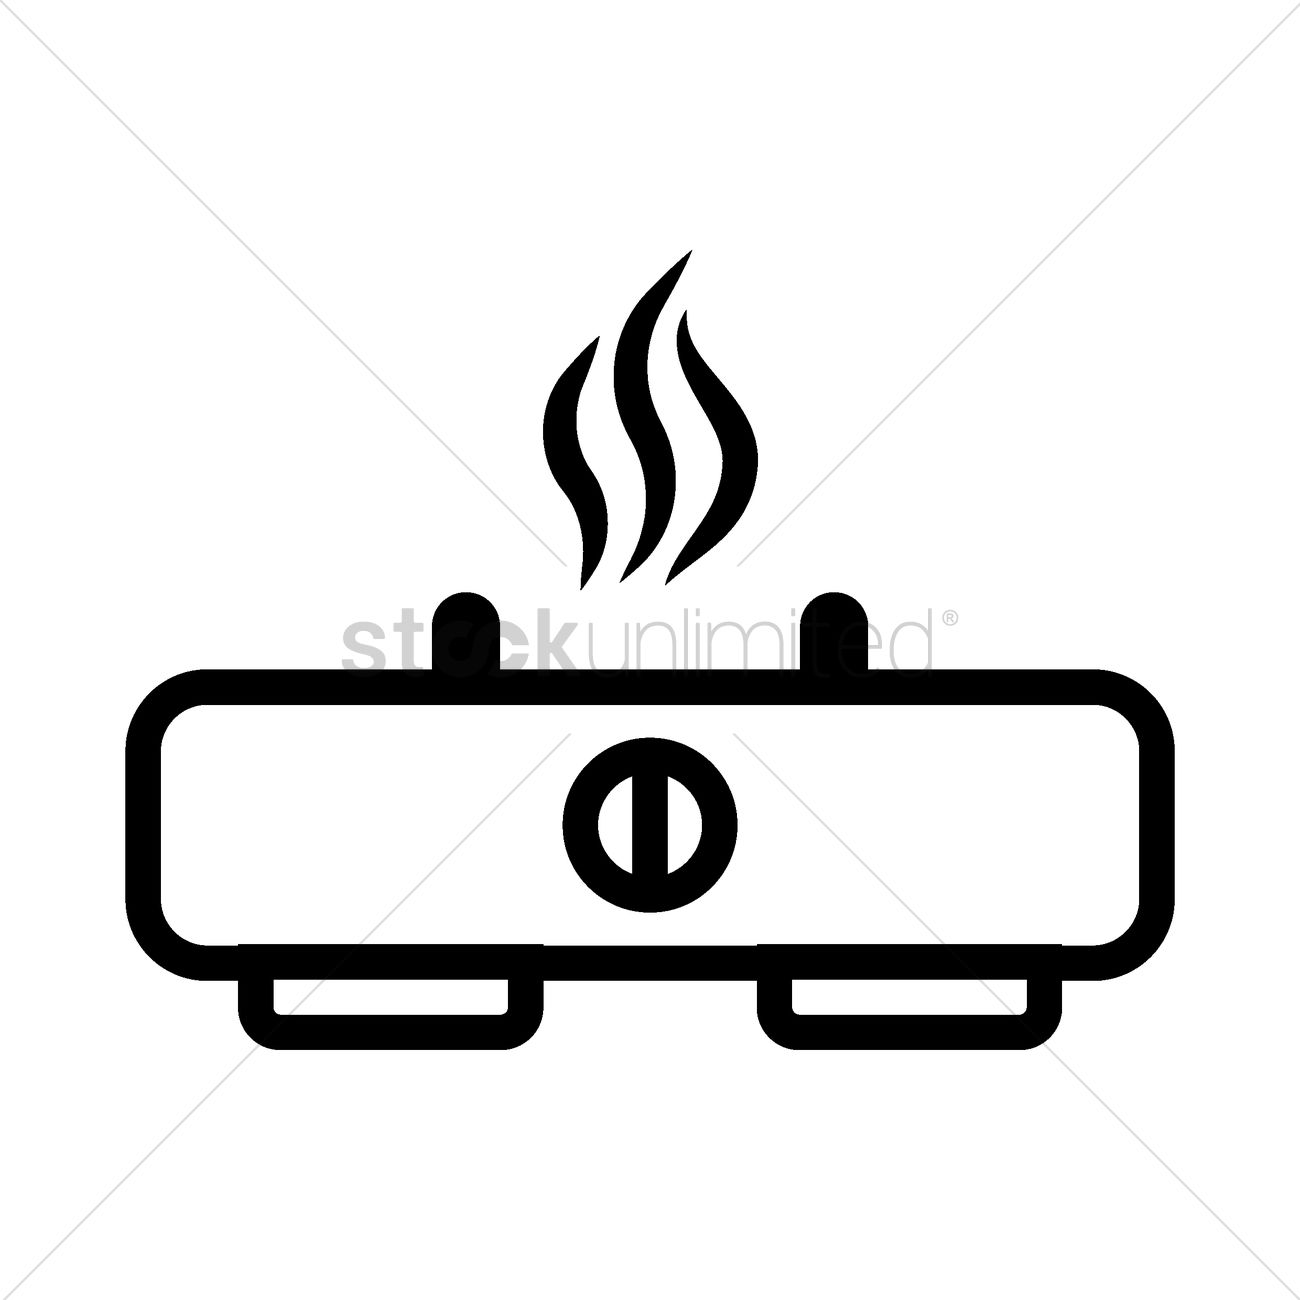 stove clipart black and white. gas stove vector graphic clipart black and white